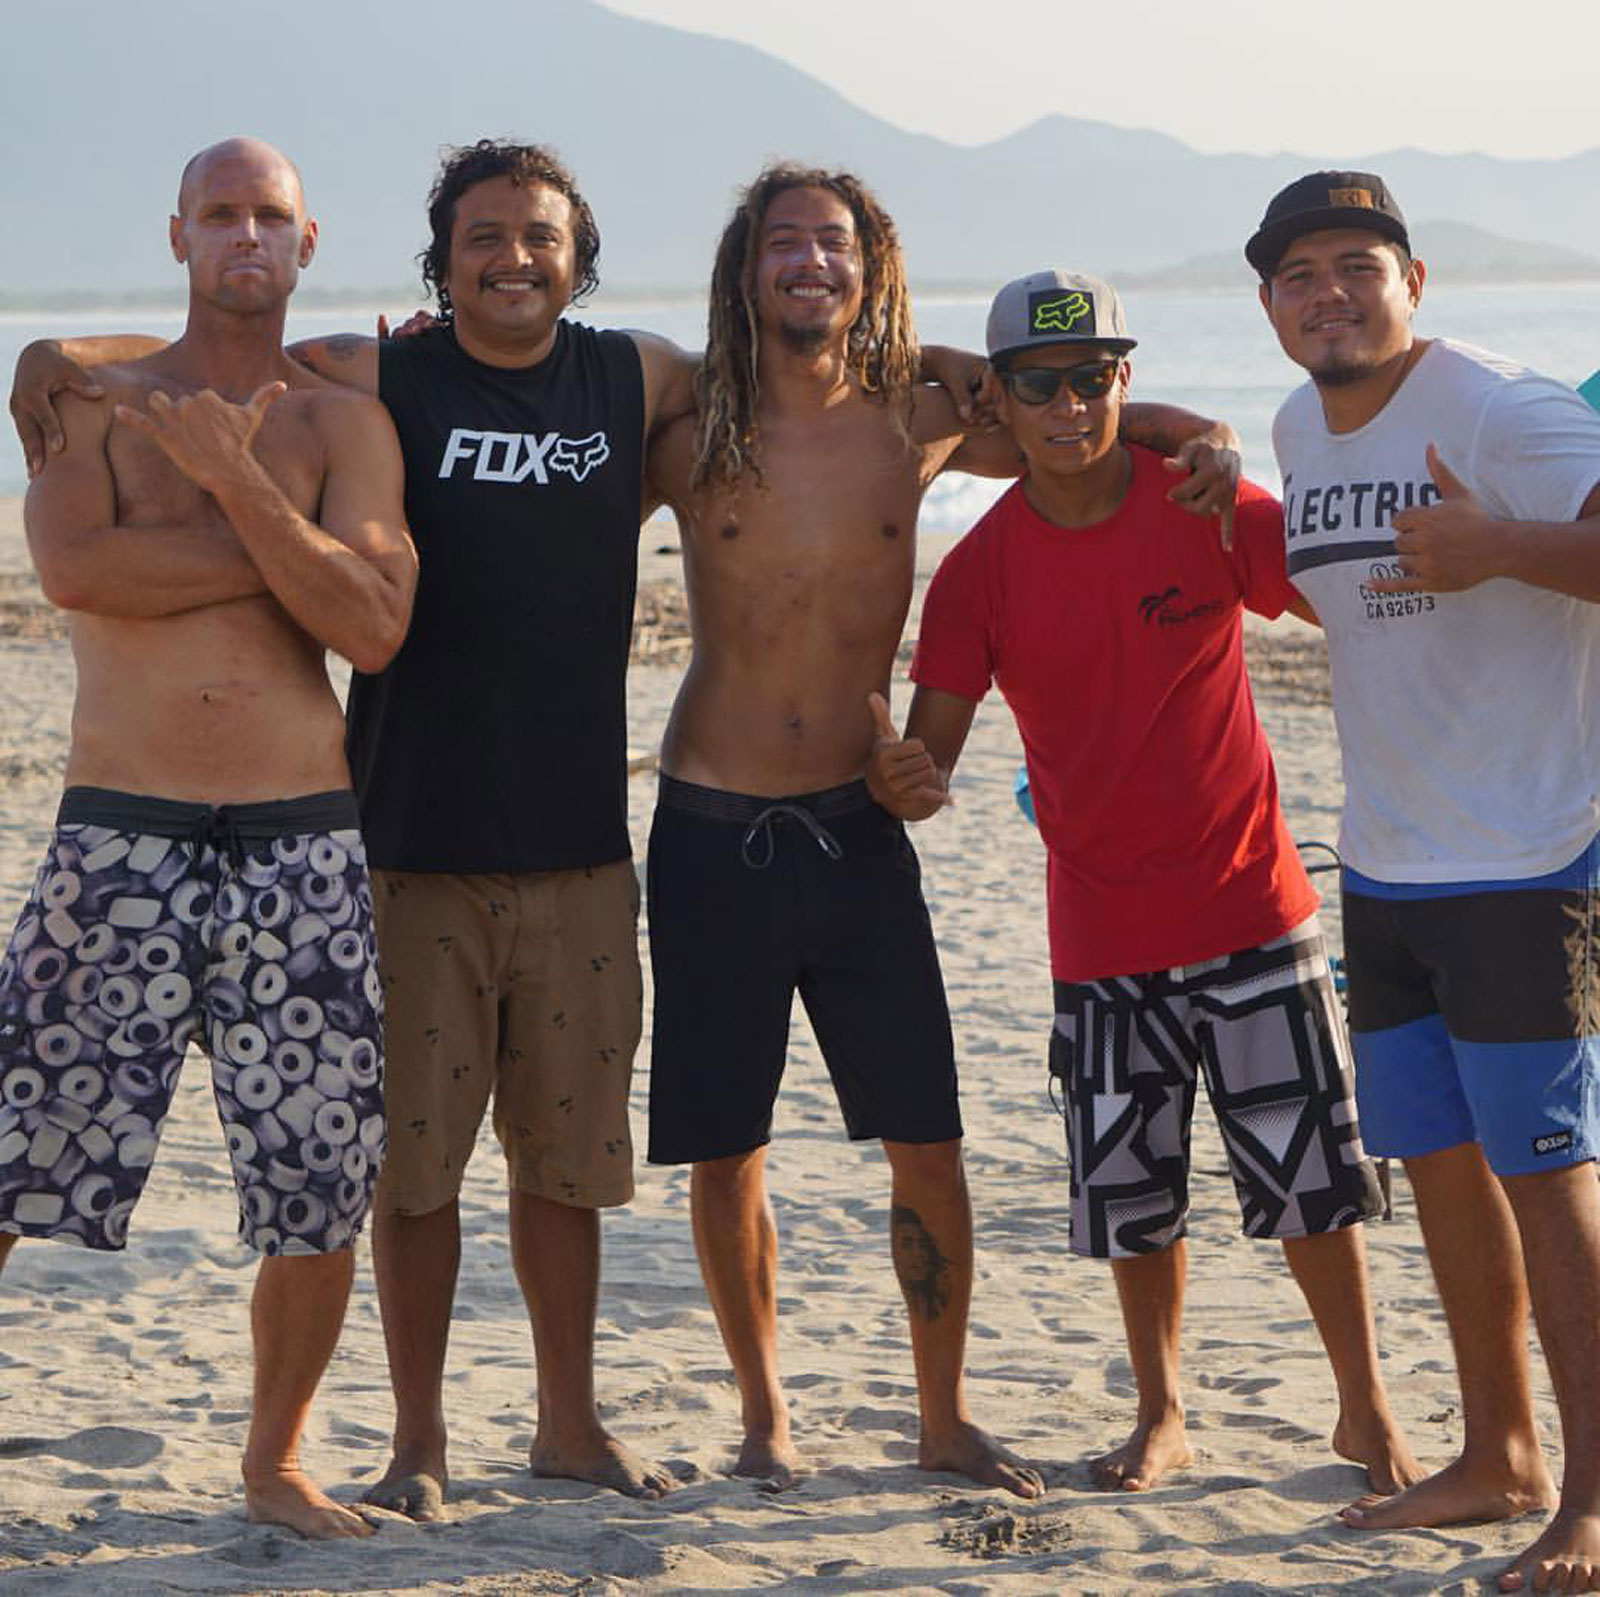 Good Crew, Las Palmeras Surf Camp, Salina Cruz